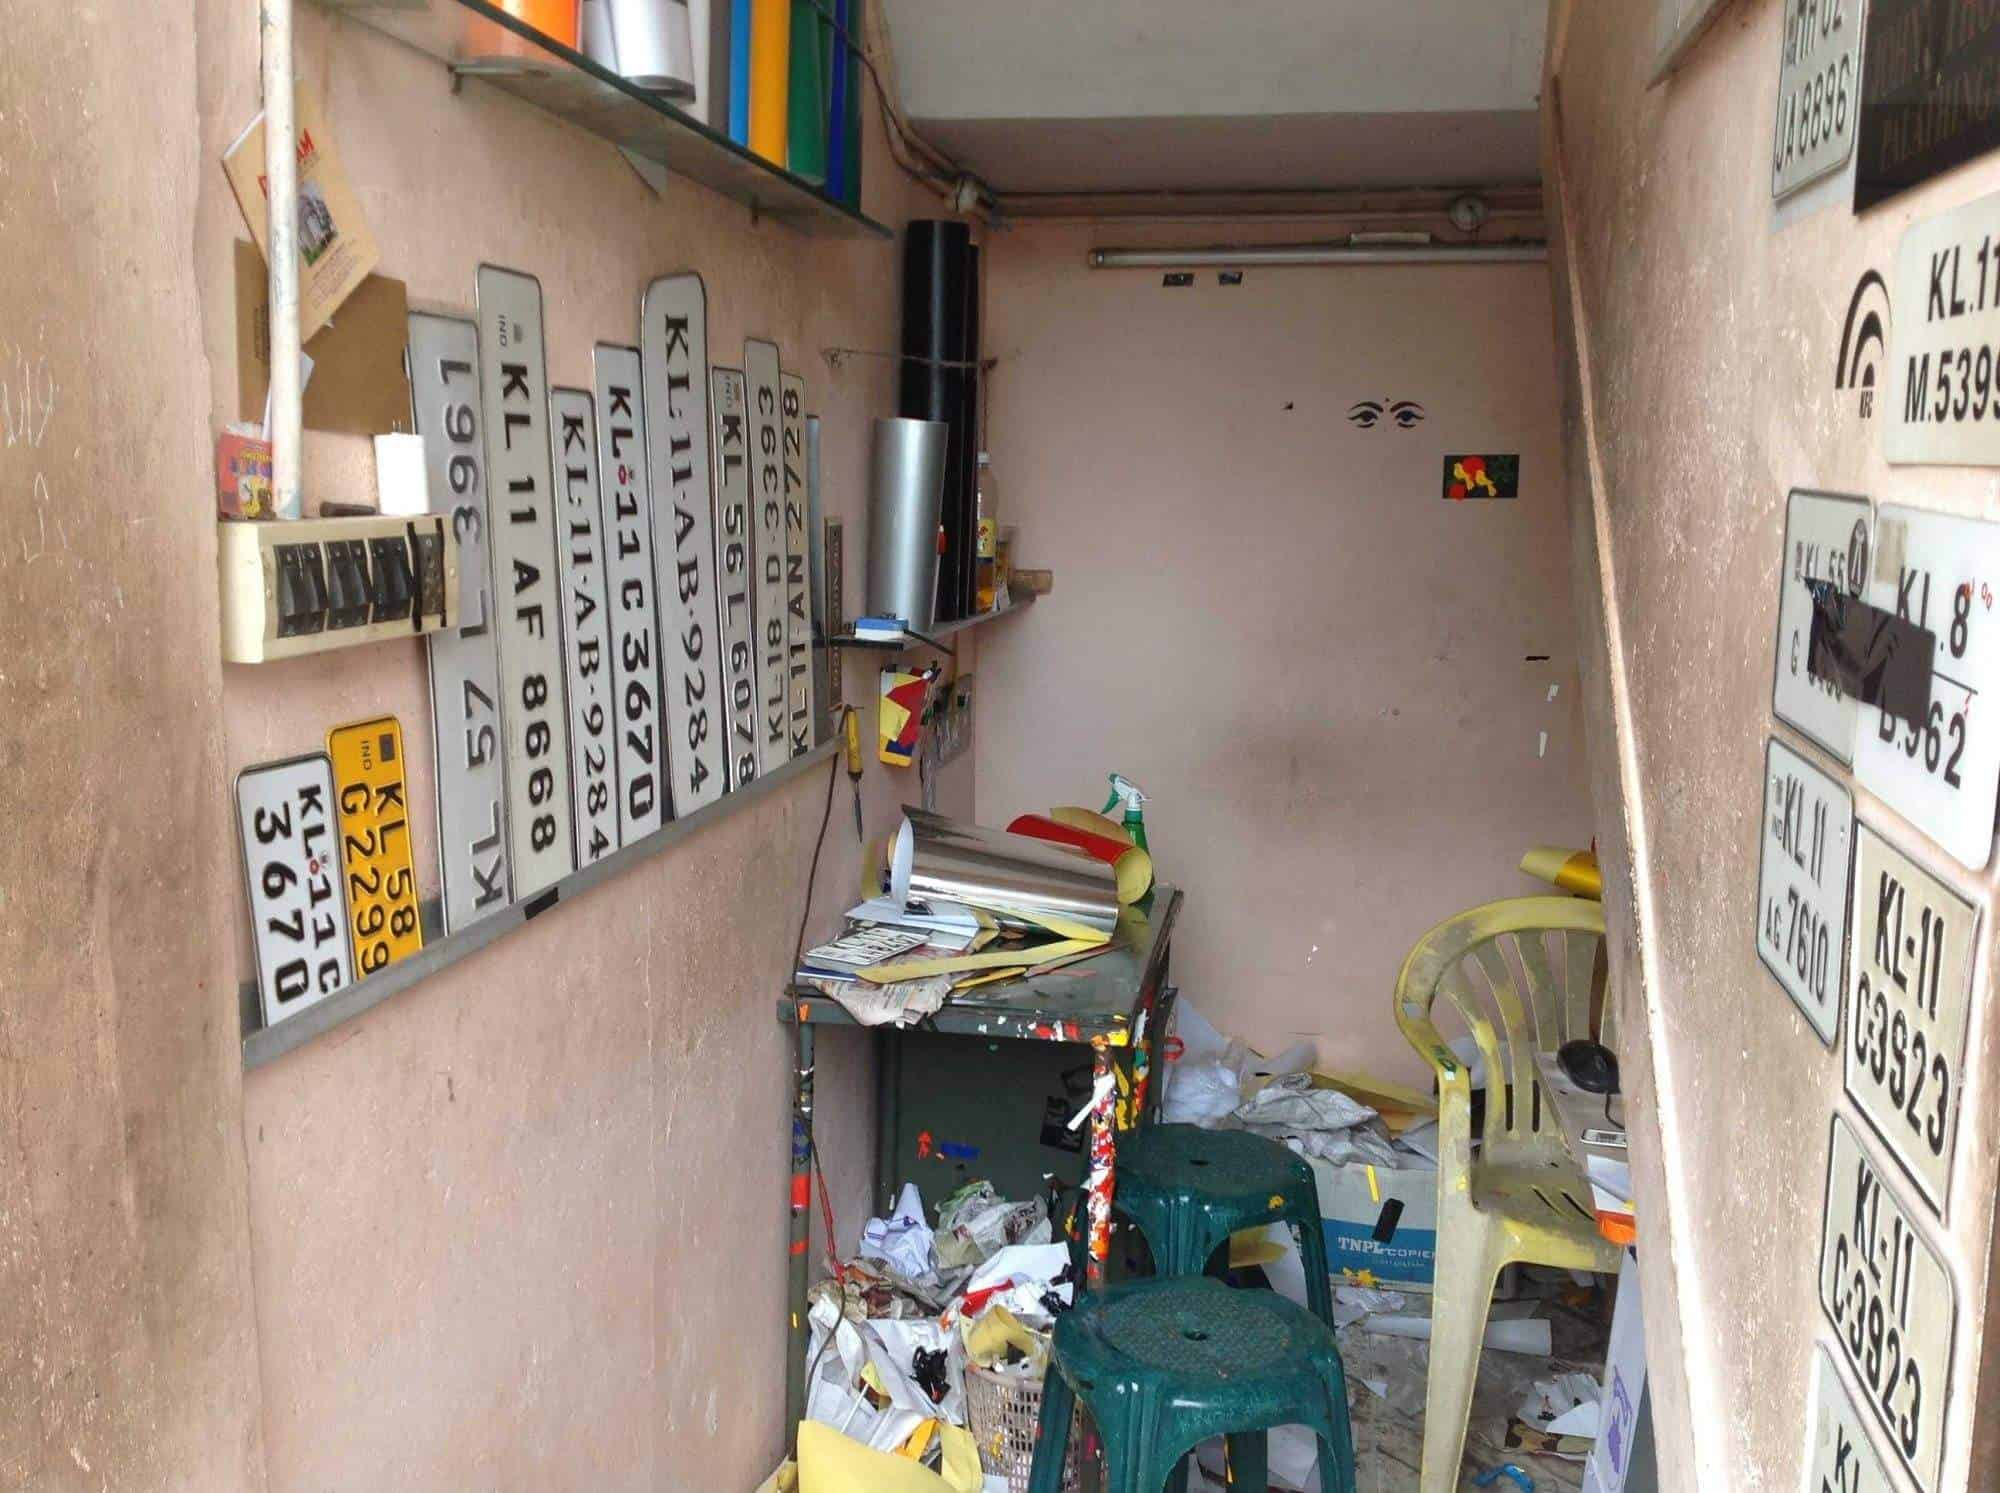 Inside view of number plate manufacturers shop nice sticker cutting photos ymca road